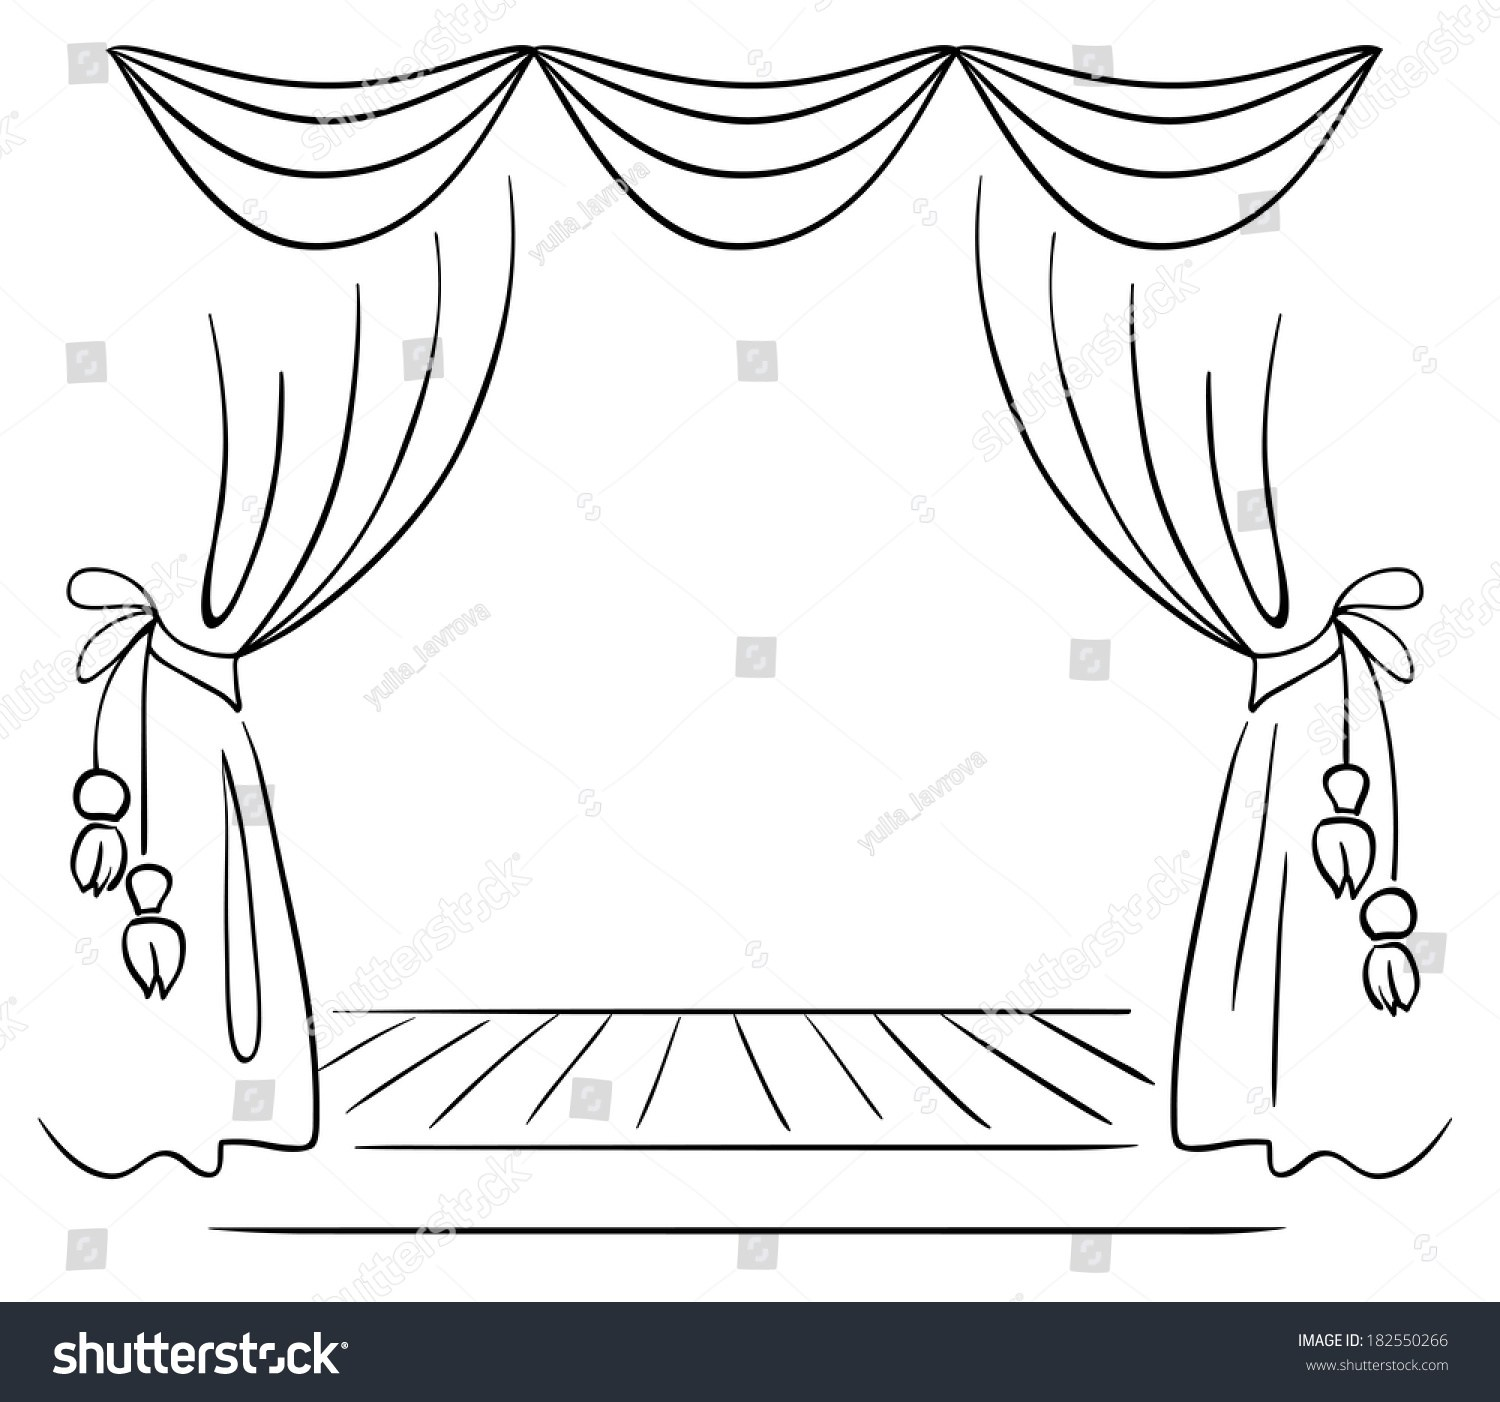 Stage black and white clipart 3 » Clipart Portal.